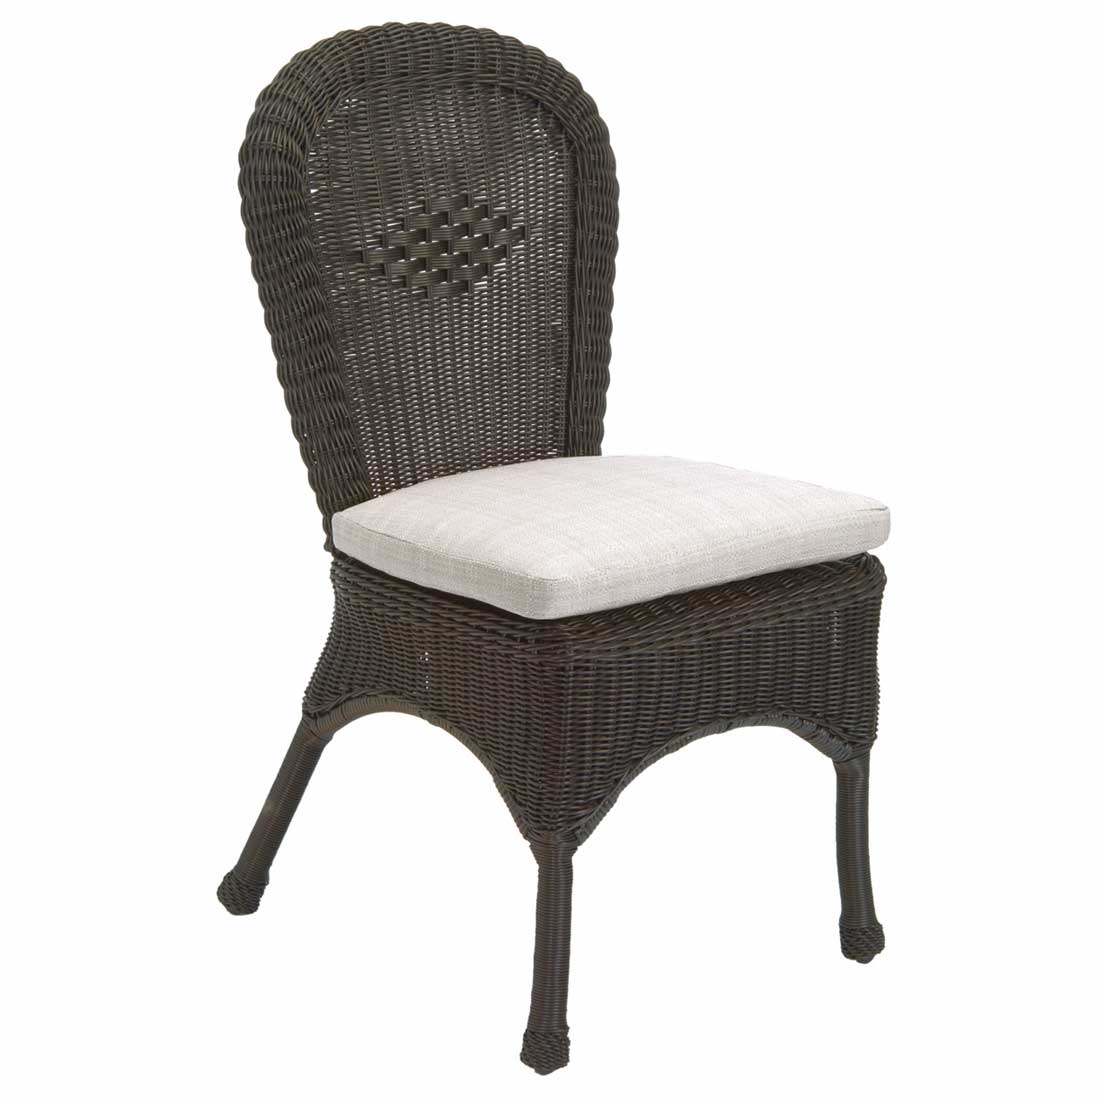 High Quality Classic Wicker Side Chair